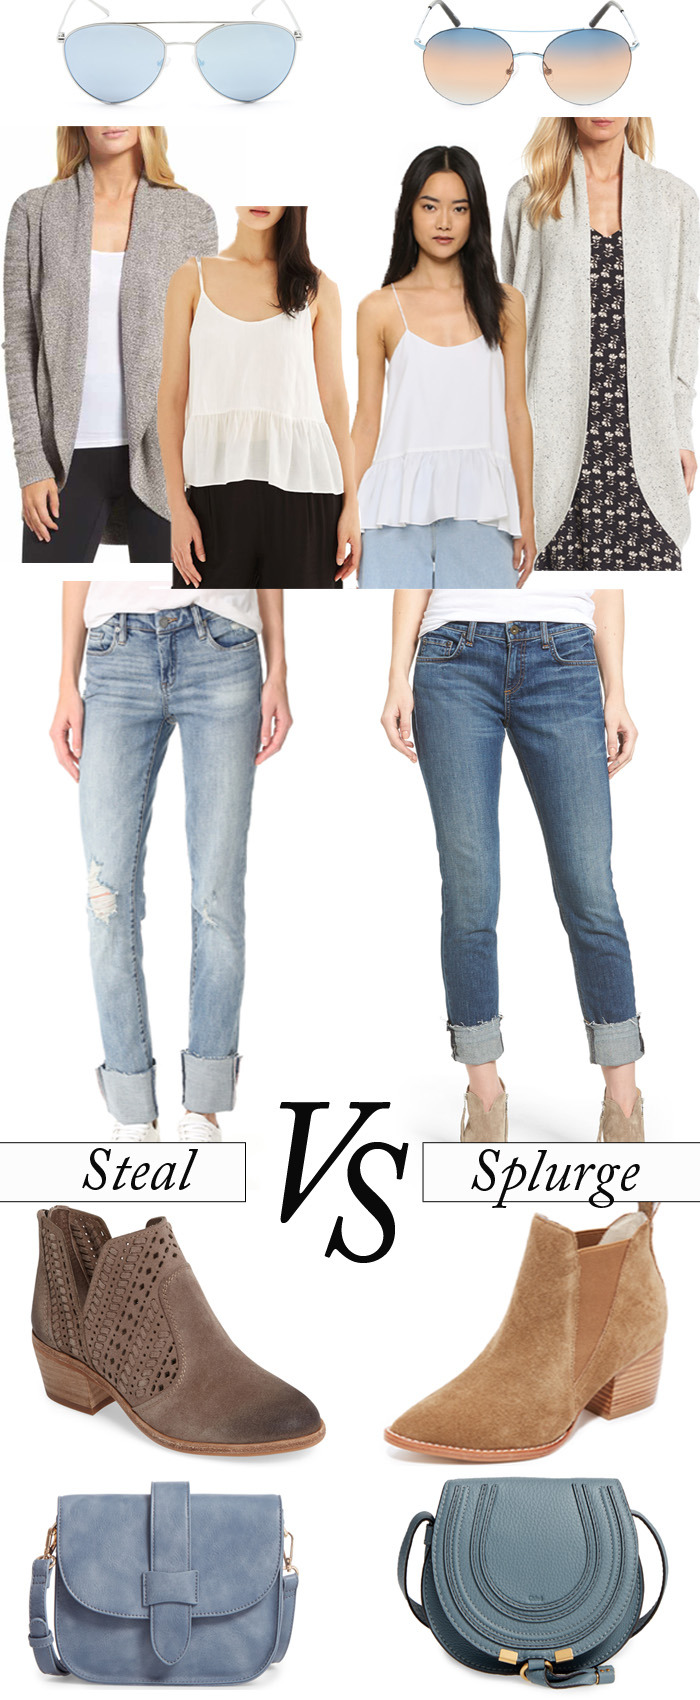 Style Board Series Casual Transition Splurge vs Steal